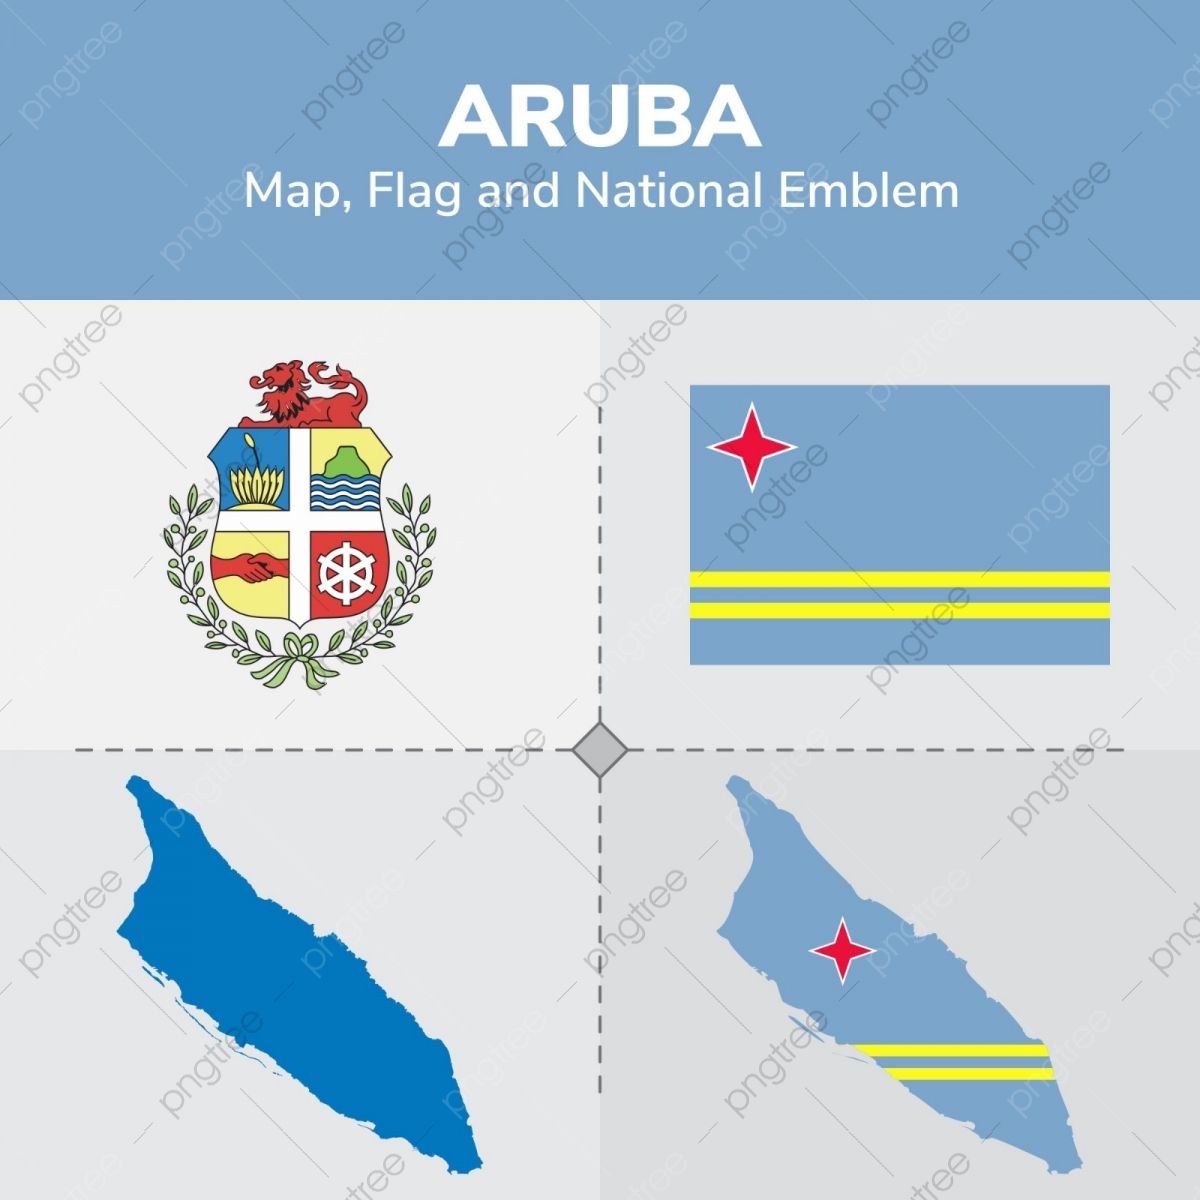 Aruba Map Flag And National Emblem, Continents, Countries ...